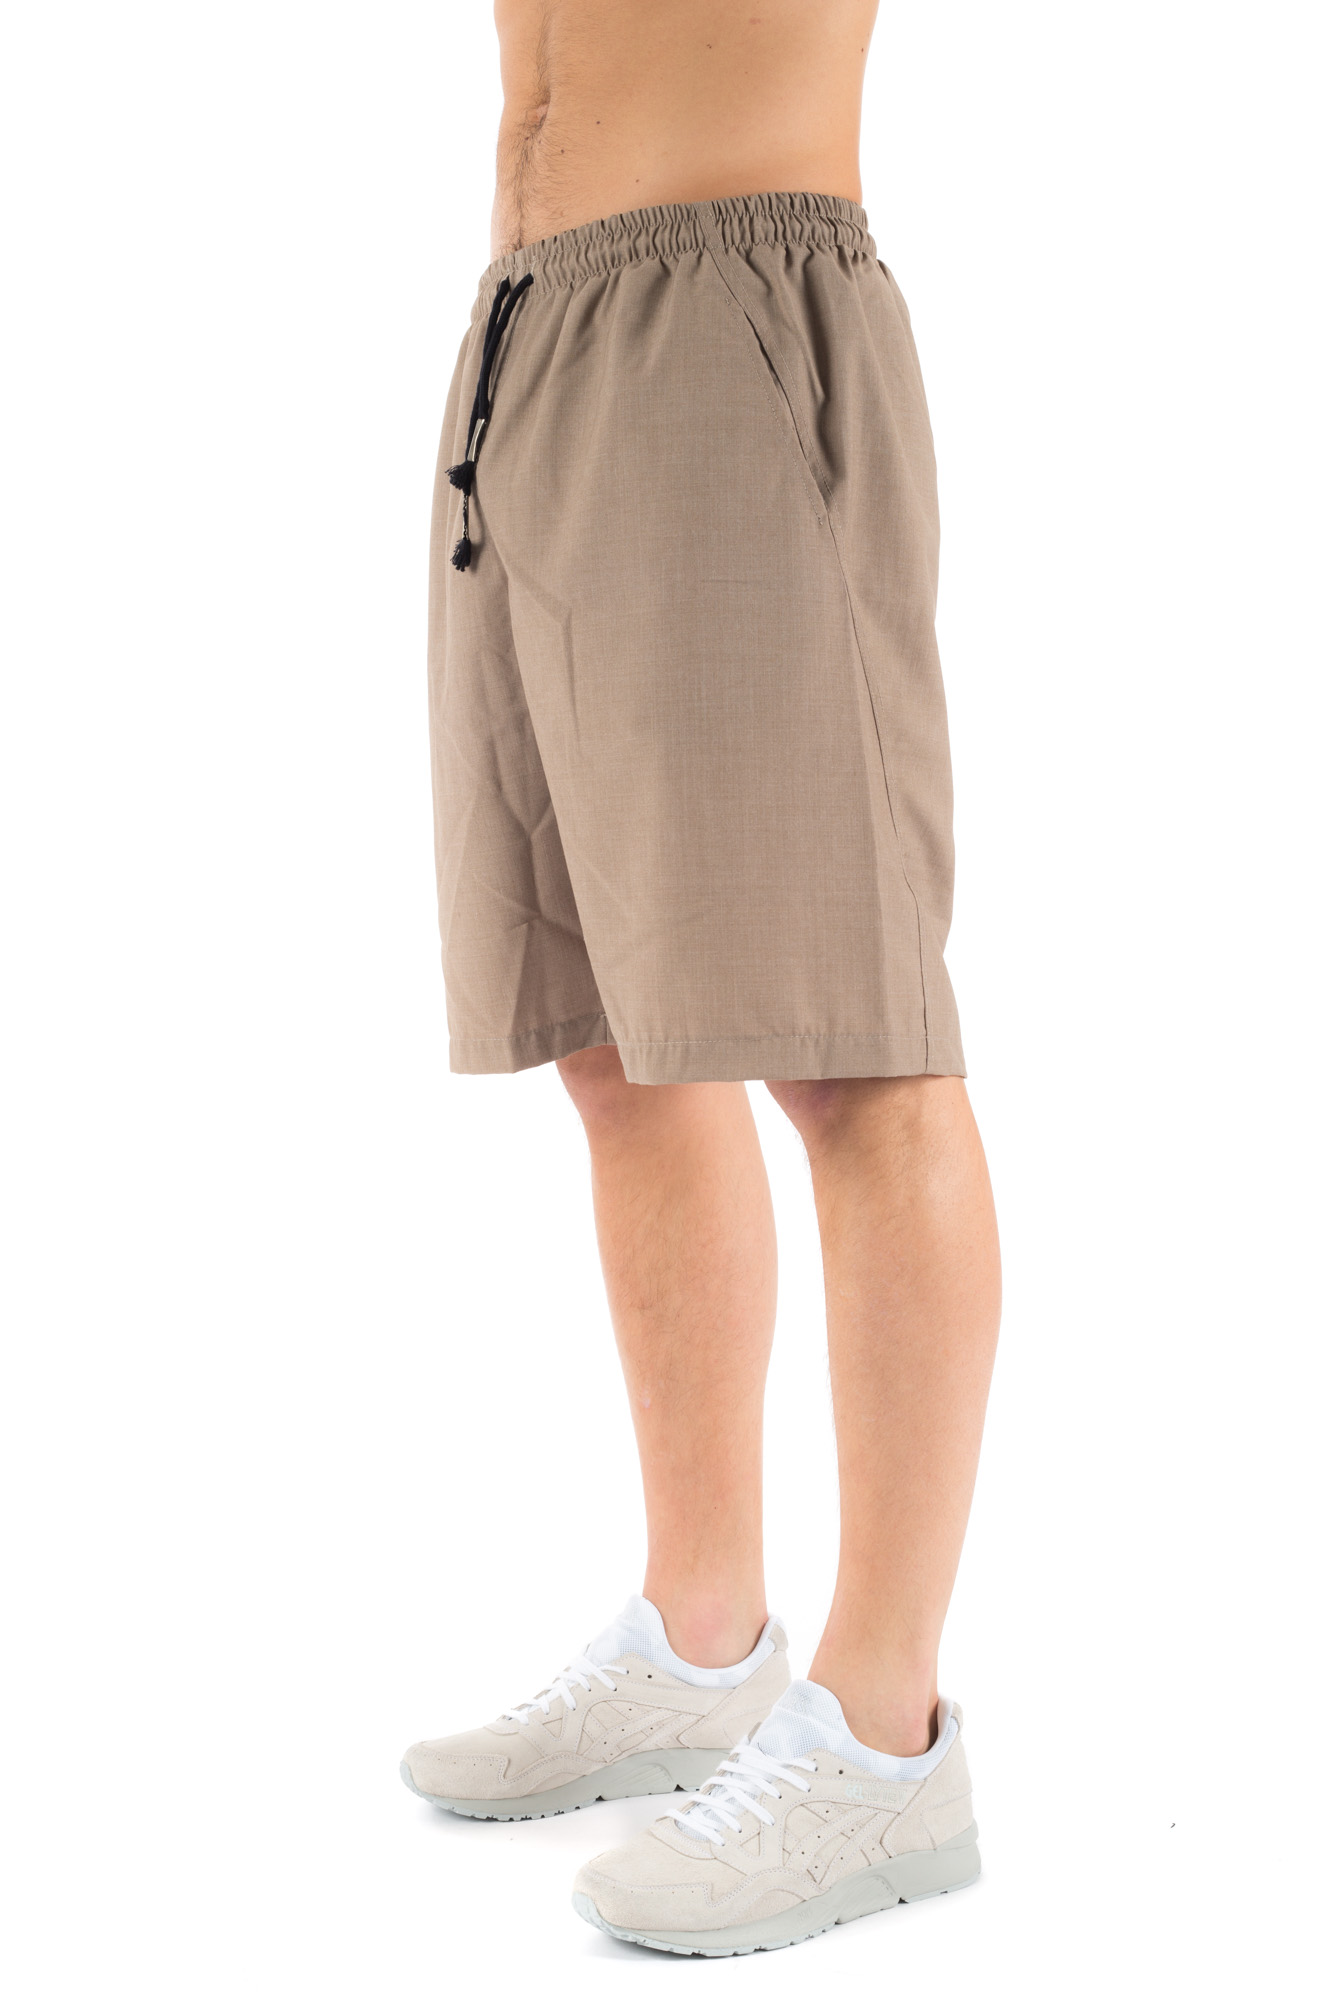 Clap Your Hand - Shorts beige con elastico in vita